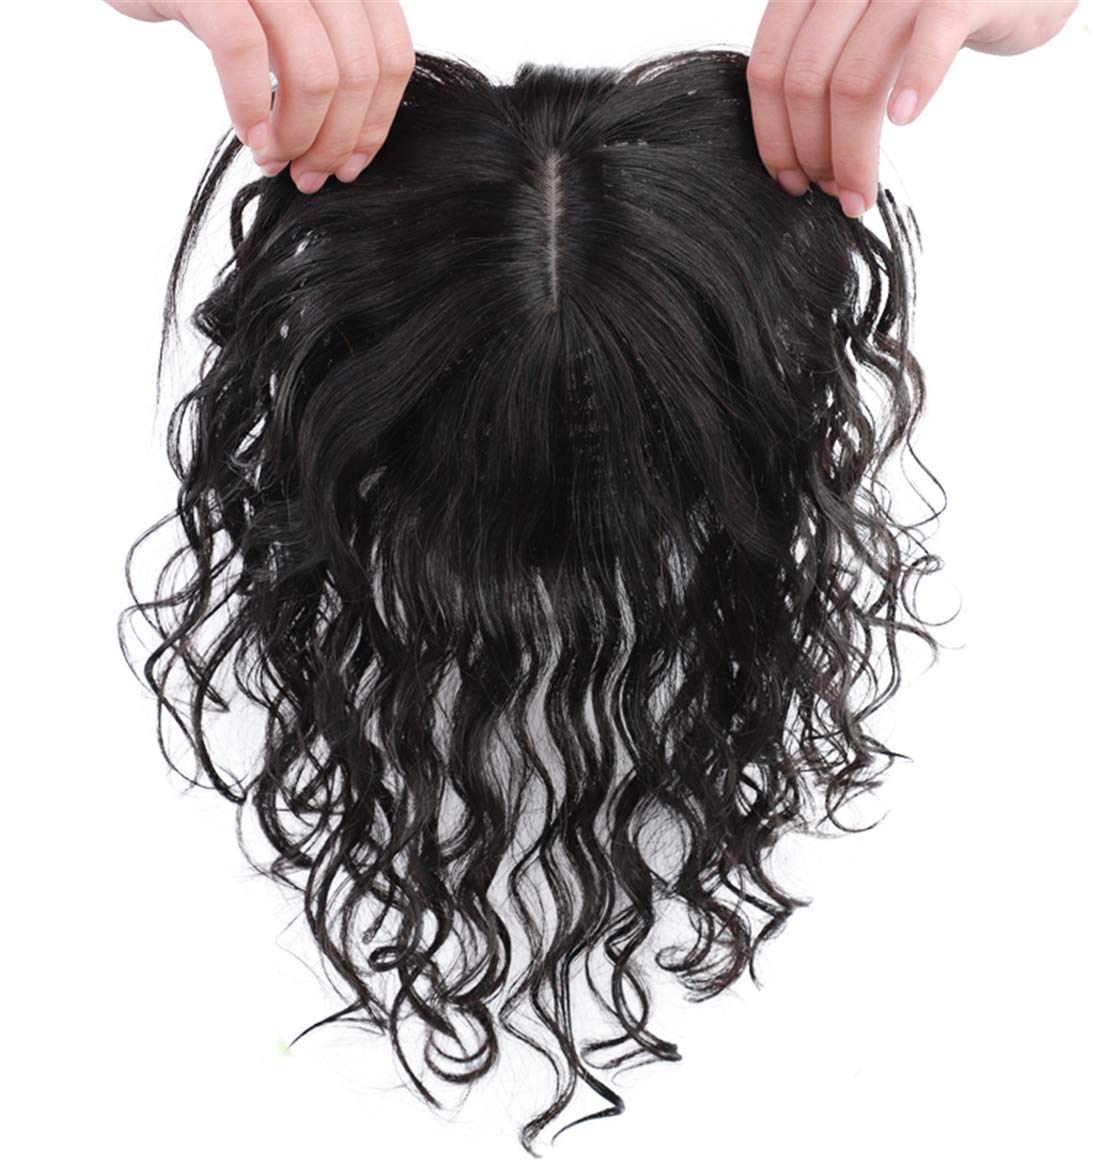 Real Human Hair Crown Hair Pieces Curly Hair Topper with Bangs for Women with Thinning Hair 9